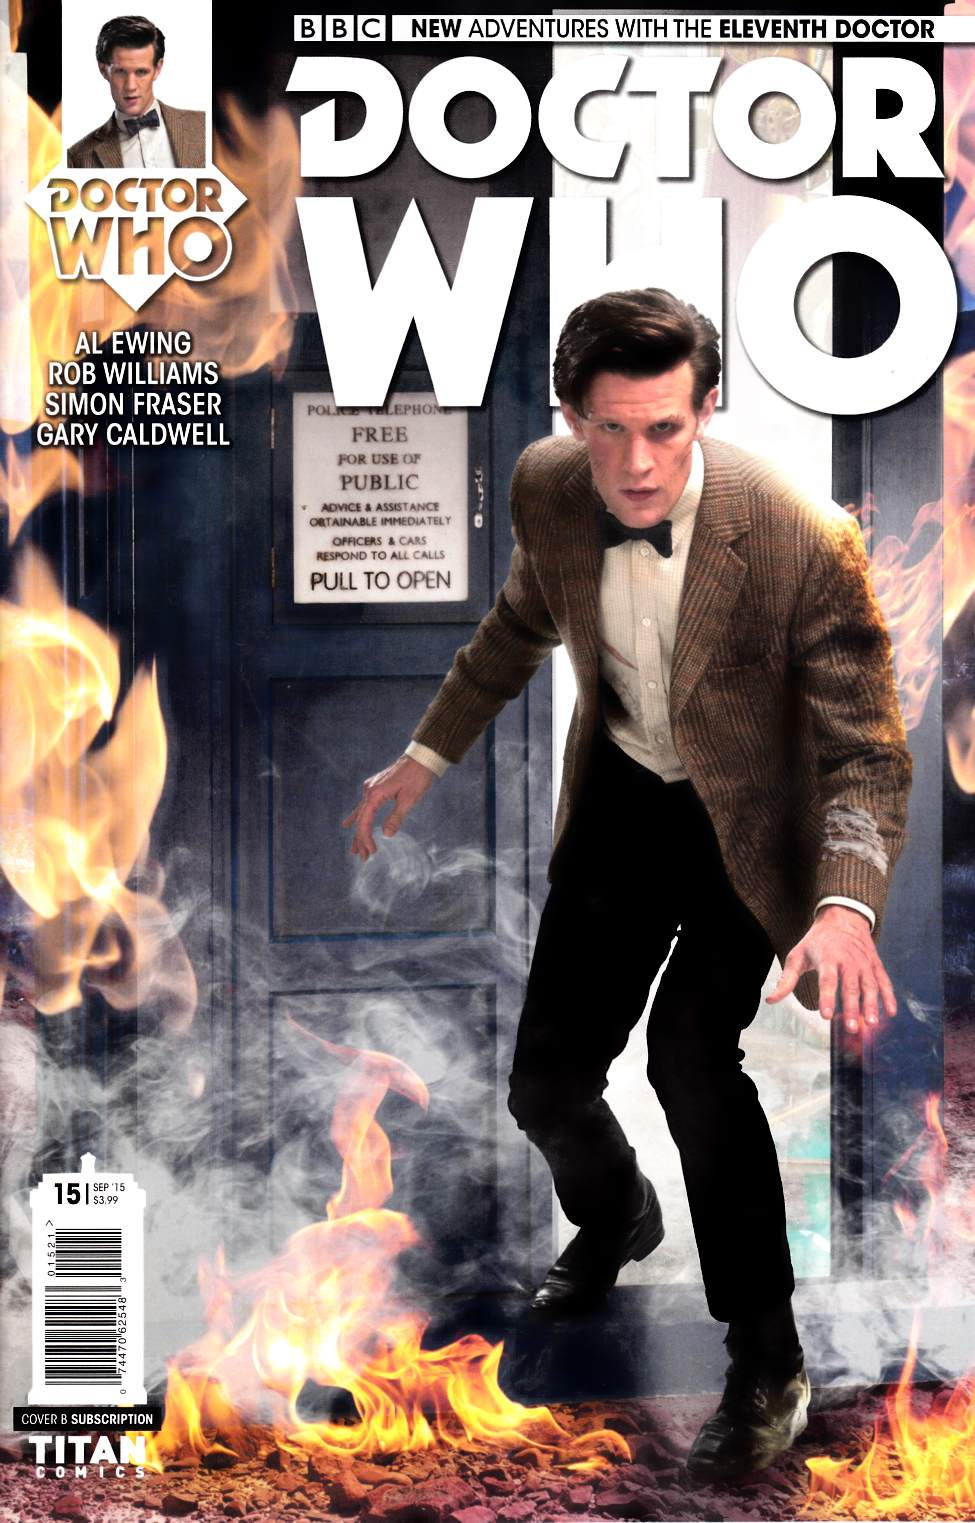 Doctor Who 11th Doctor #15 Subscription Photo [Titan Comic] THUMBNAIL